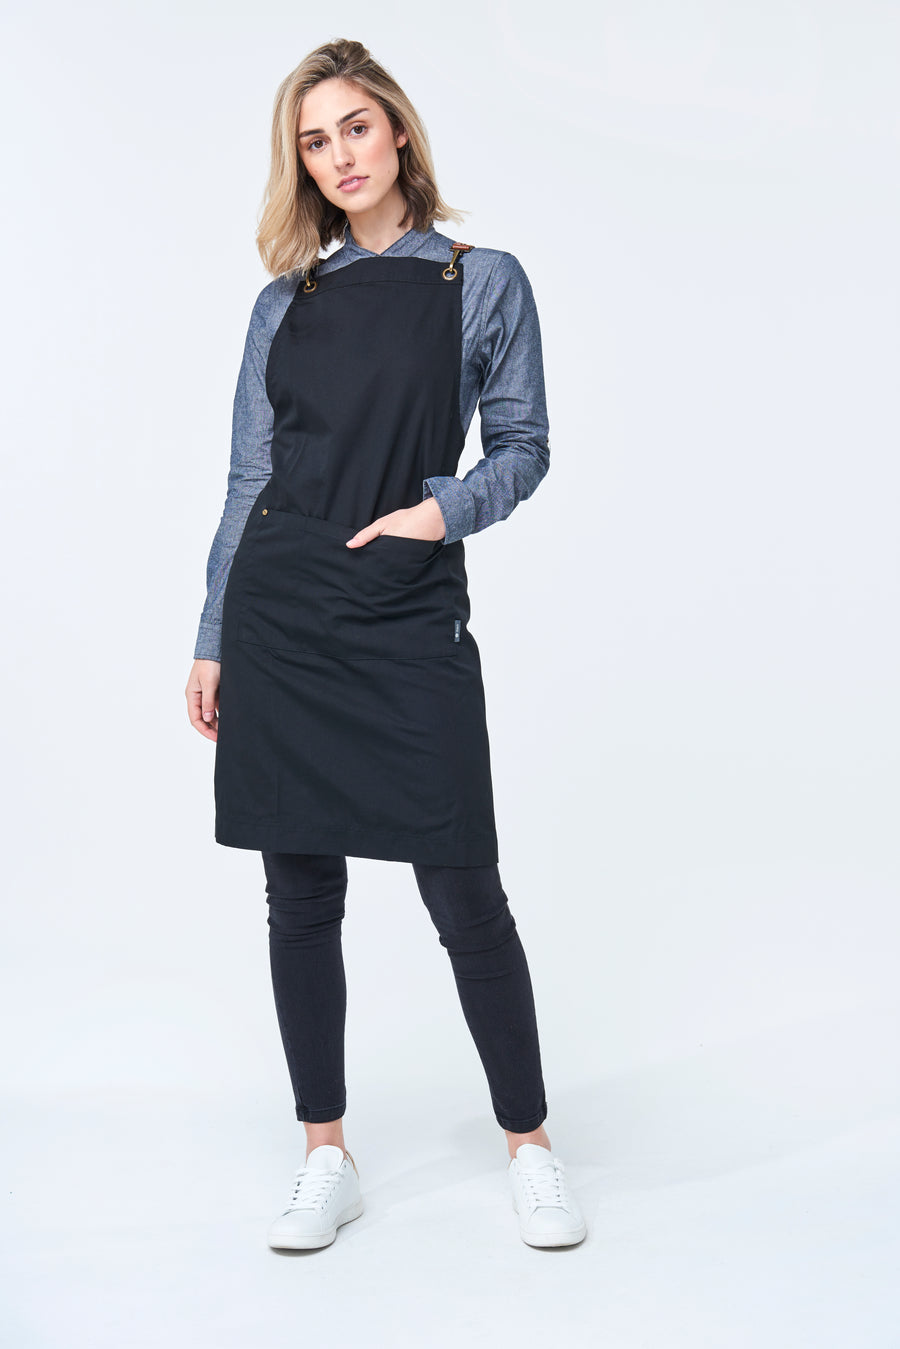 CHARLIE CHEF Long Sleeve shirt with Black tab and metal snaps Woman's - SLATE